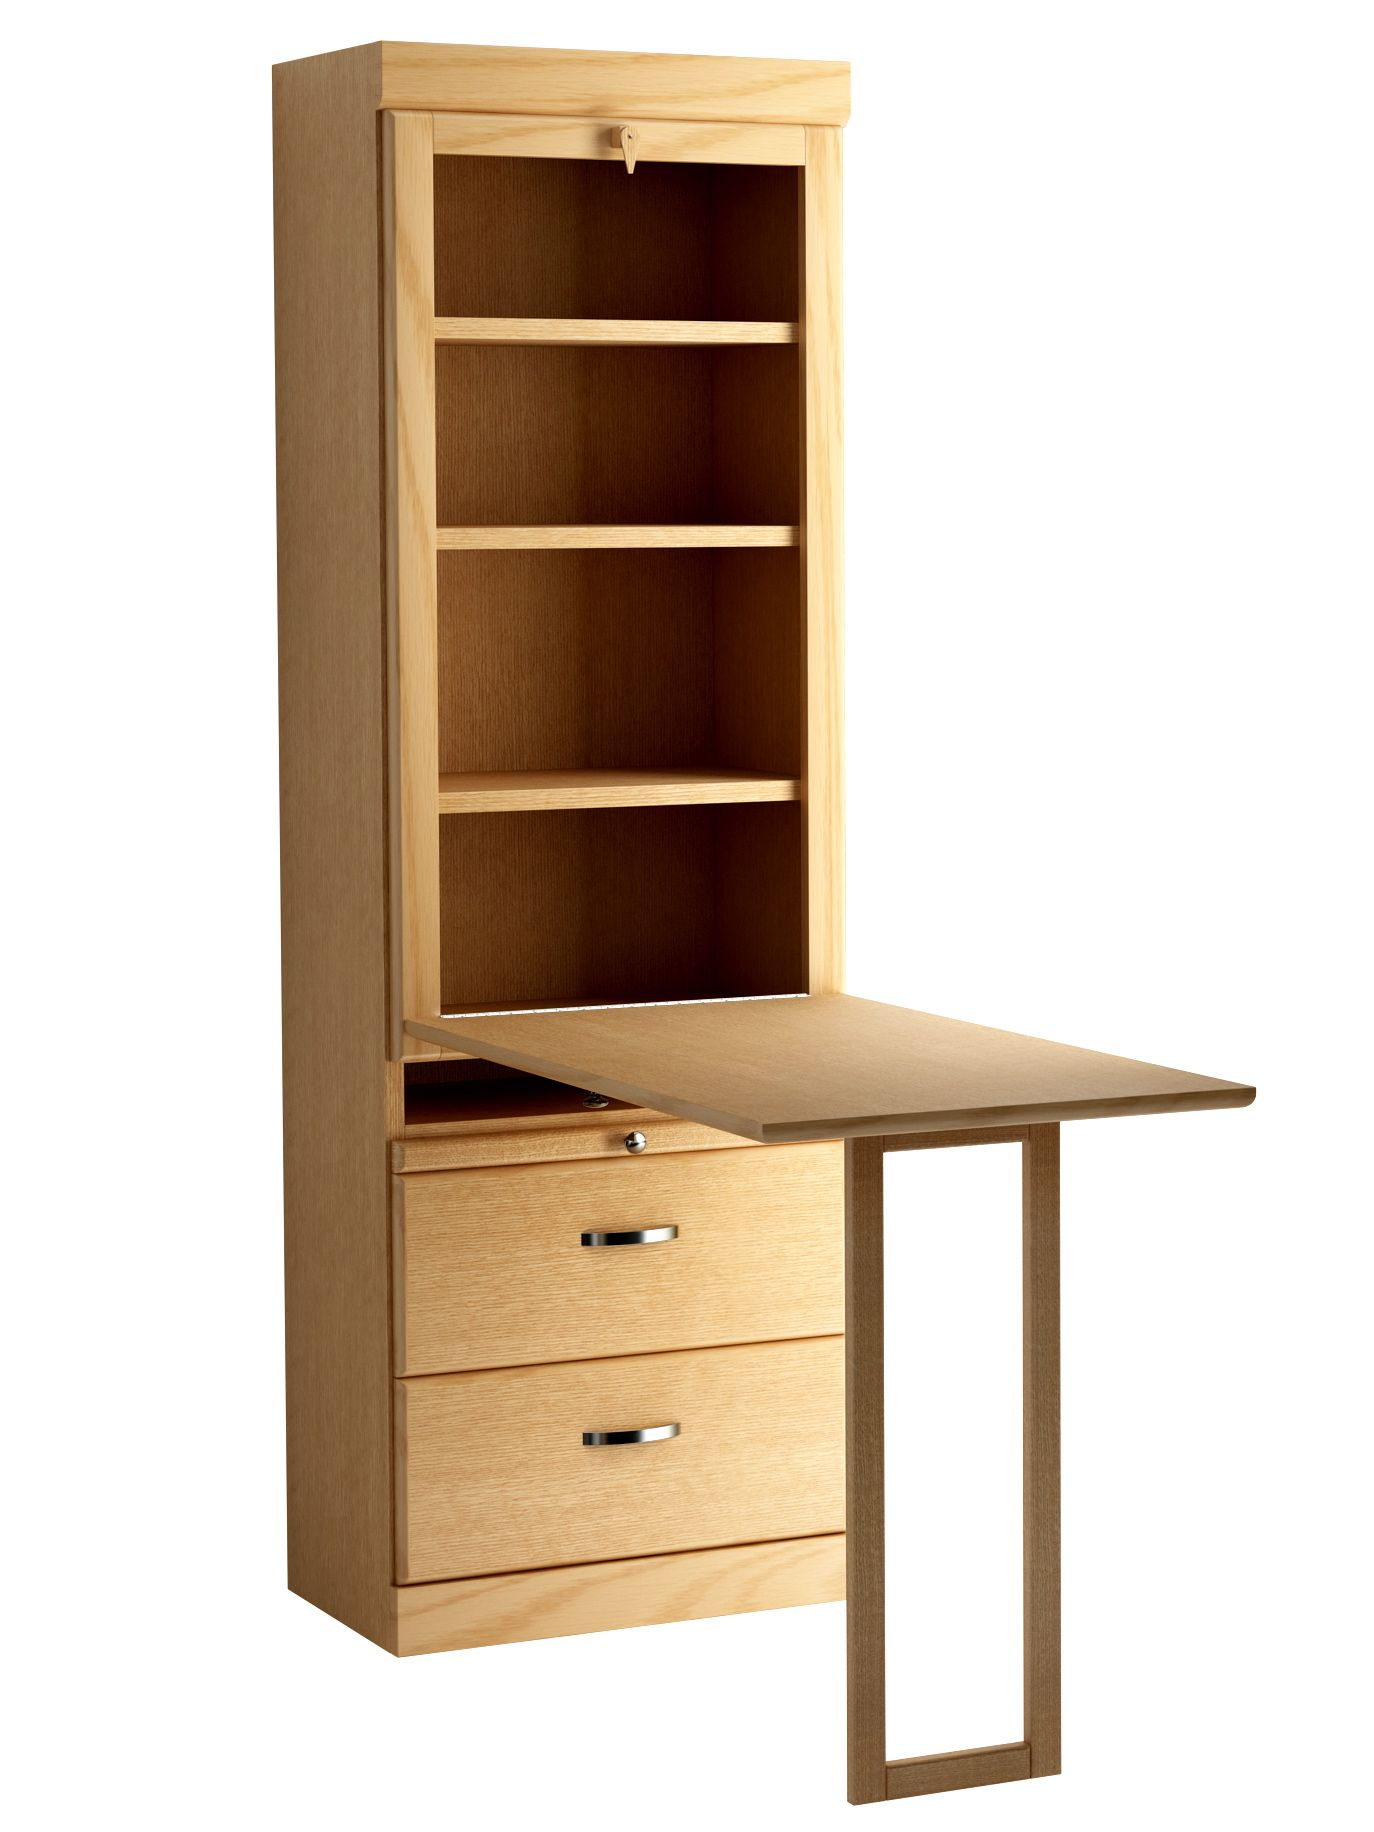 Shaker Style Bookcase With Drop Down Table In Oak Honey Finish Shown Open